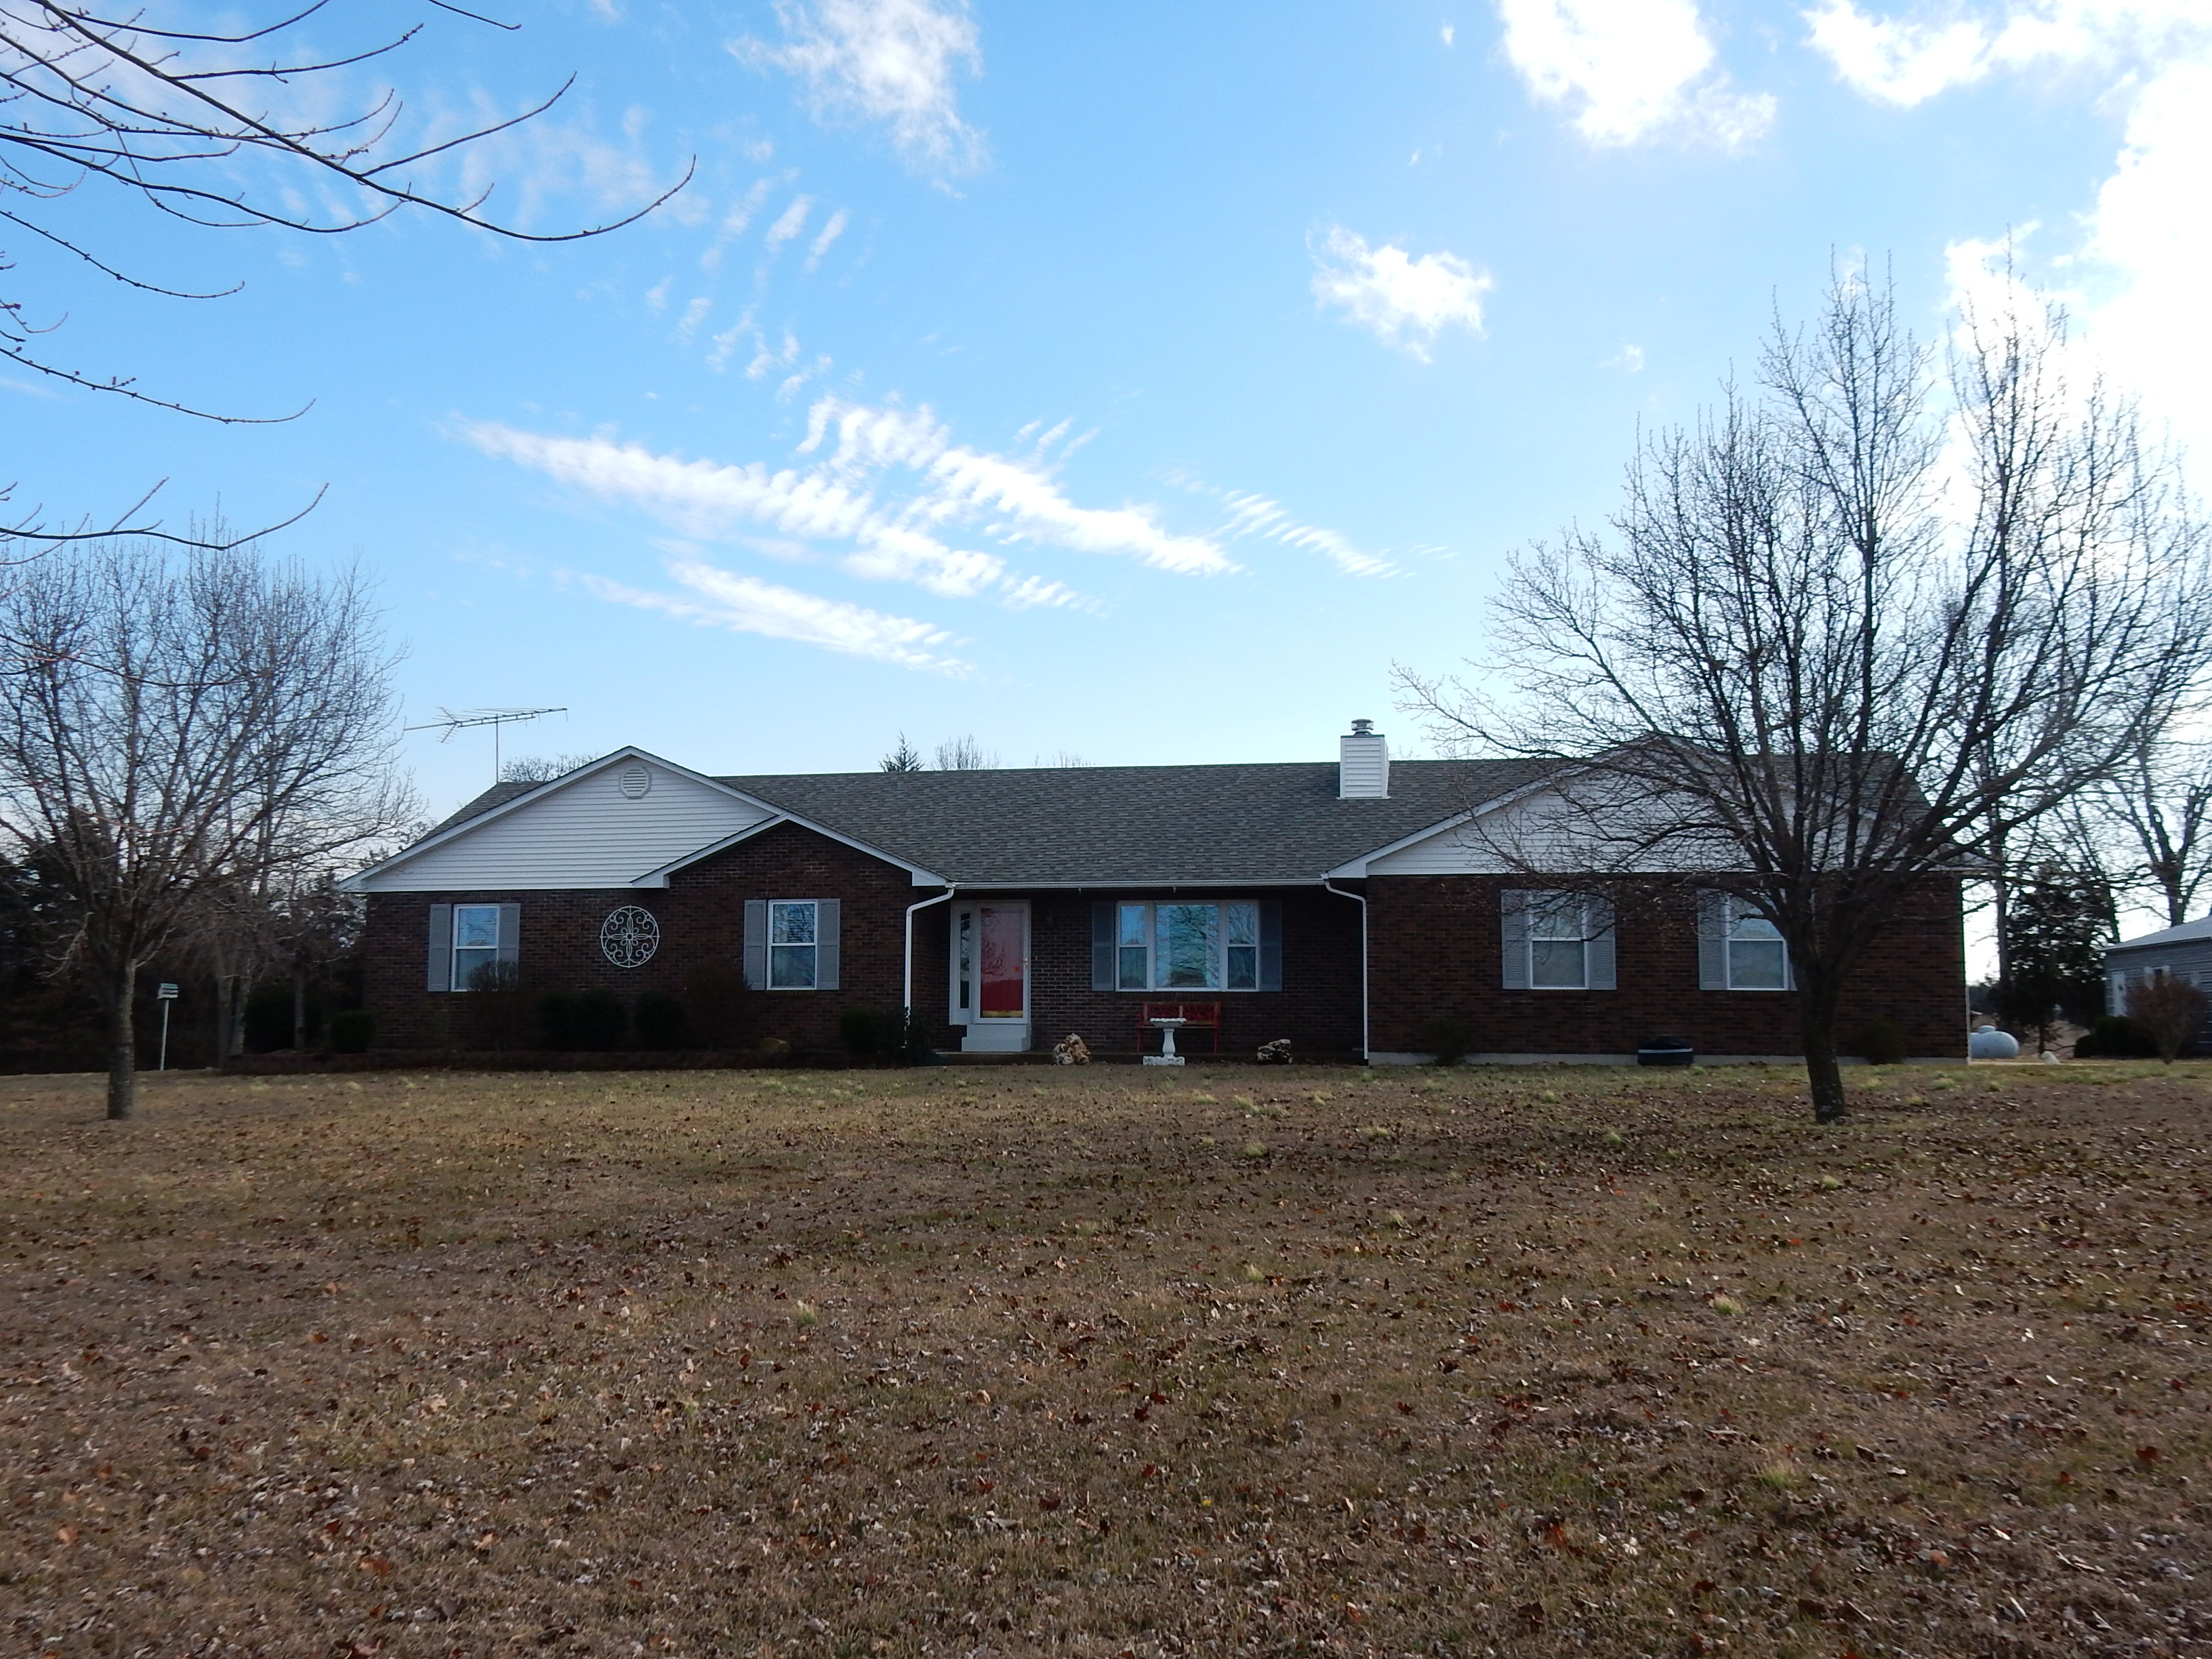 265 Purple Martin Lane, Sullivan, Missouri 63080